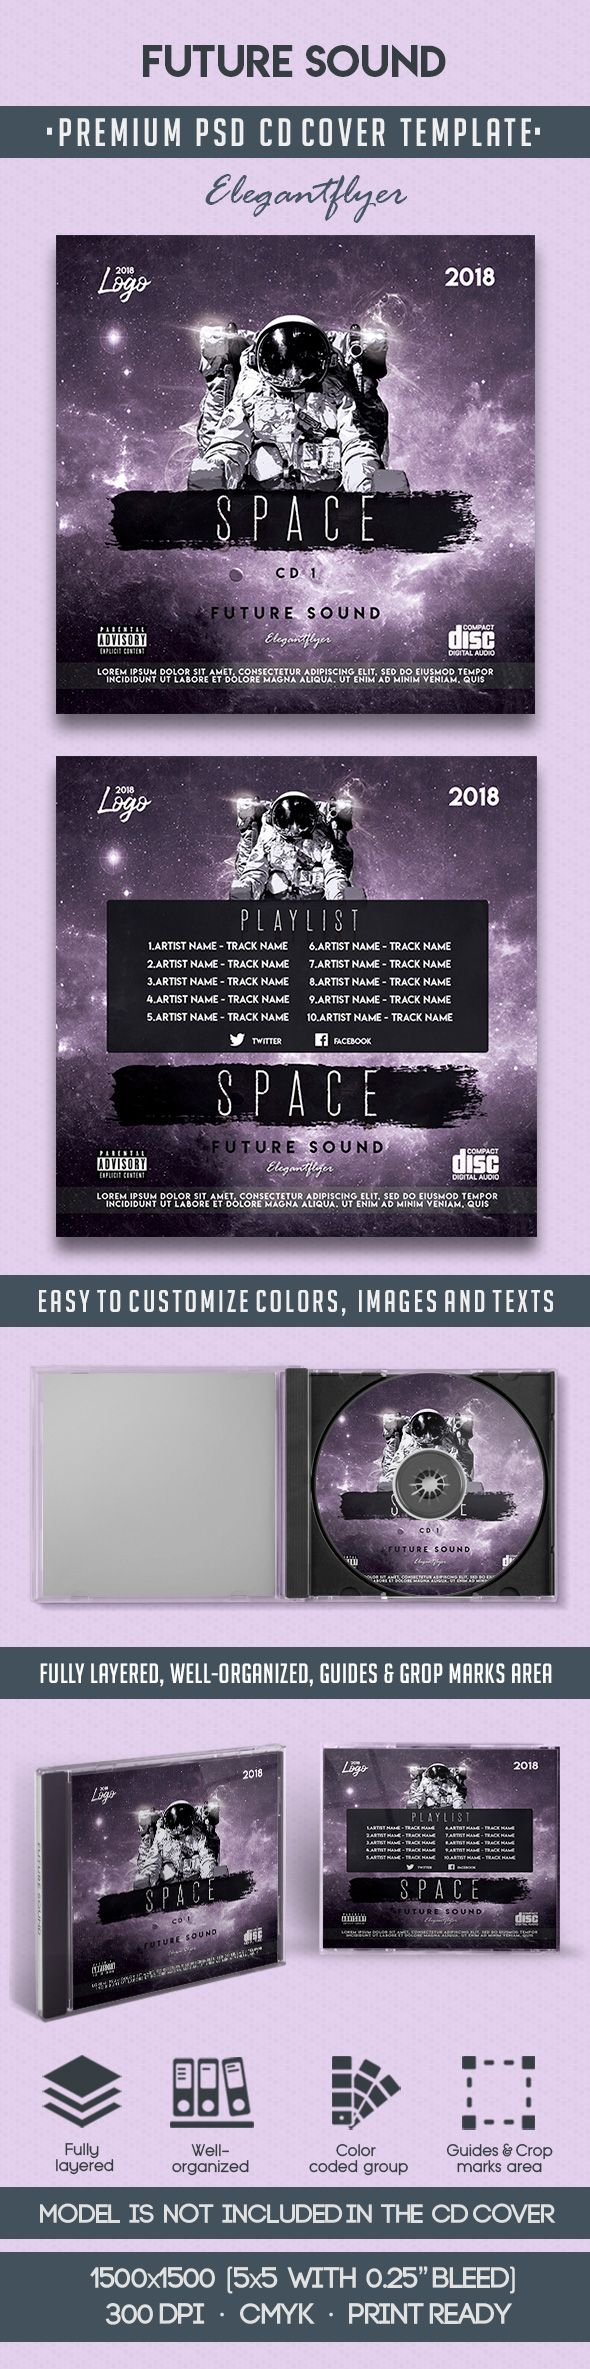 Future Sound – Premium CD Cover PSD Template